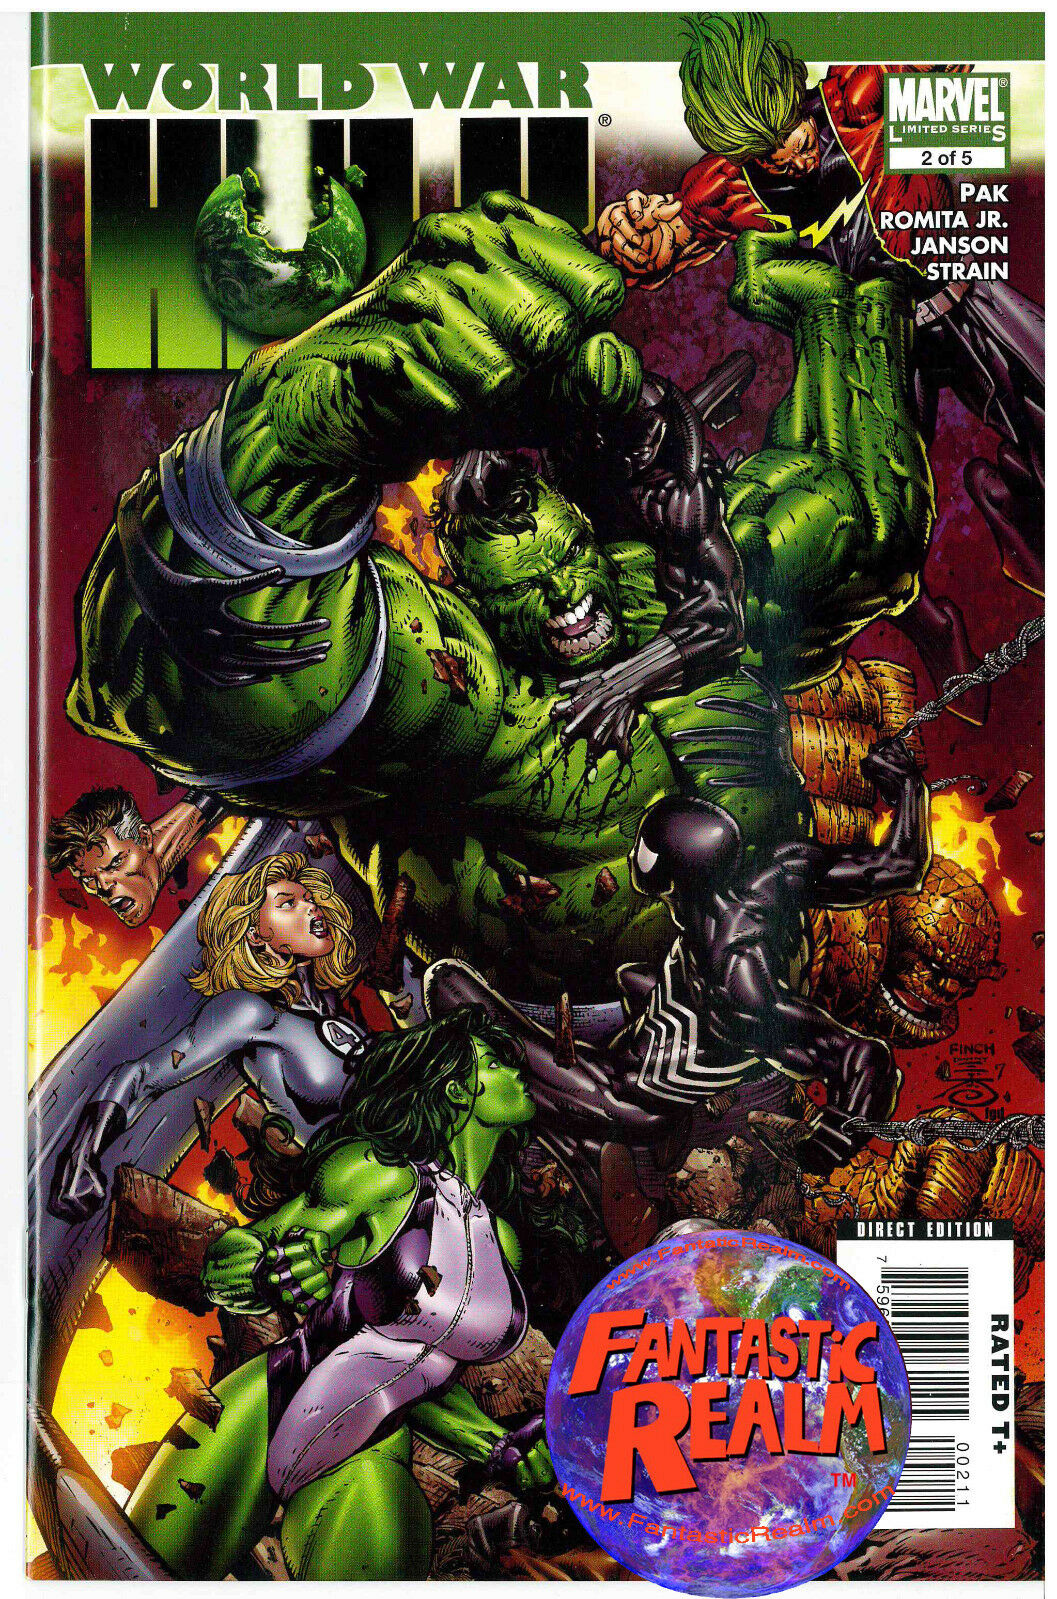 WORLD WAR HULK LIMITED SERIES 2 of 5 (SHE HULK & SPIDER-MAN) MARVEL COMICS